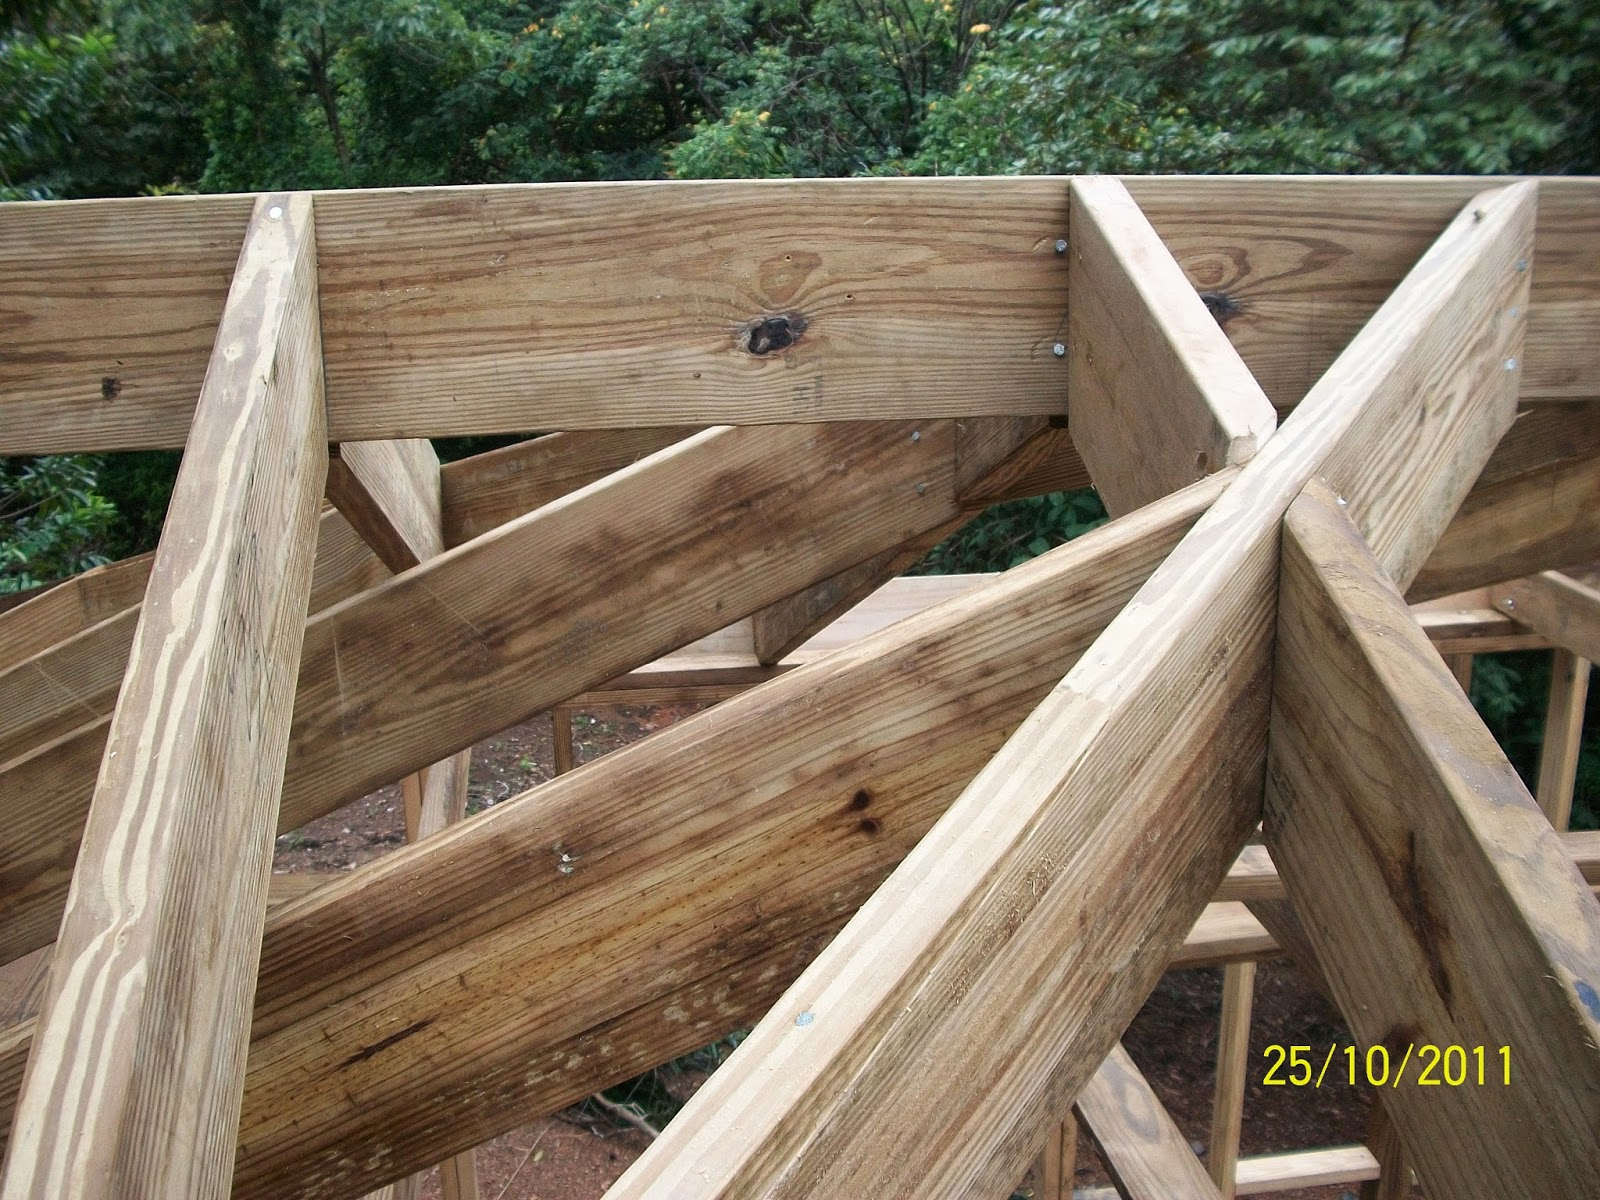 wel e to theroofcutter home of will holladay roof framing